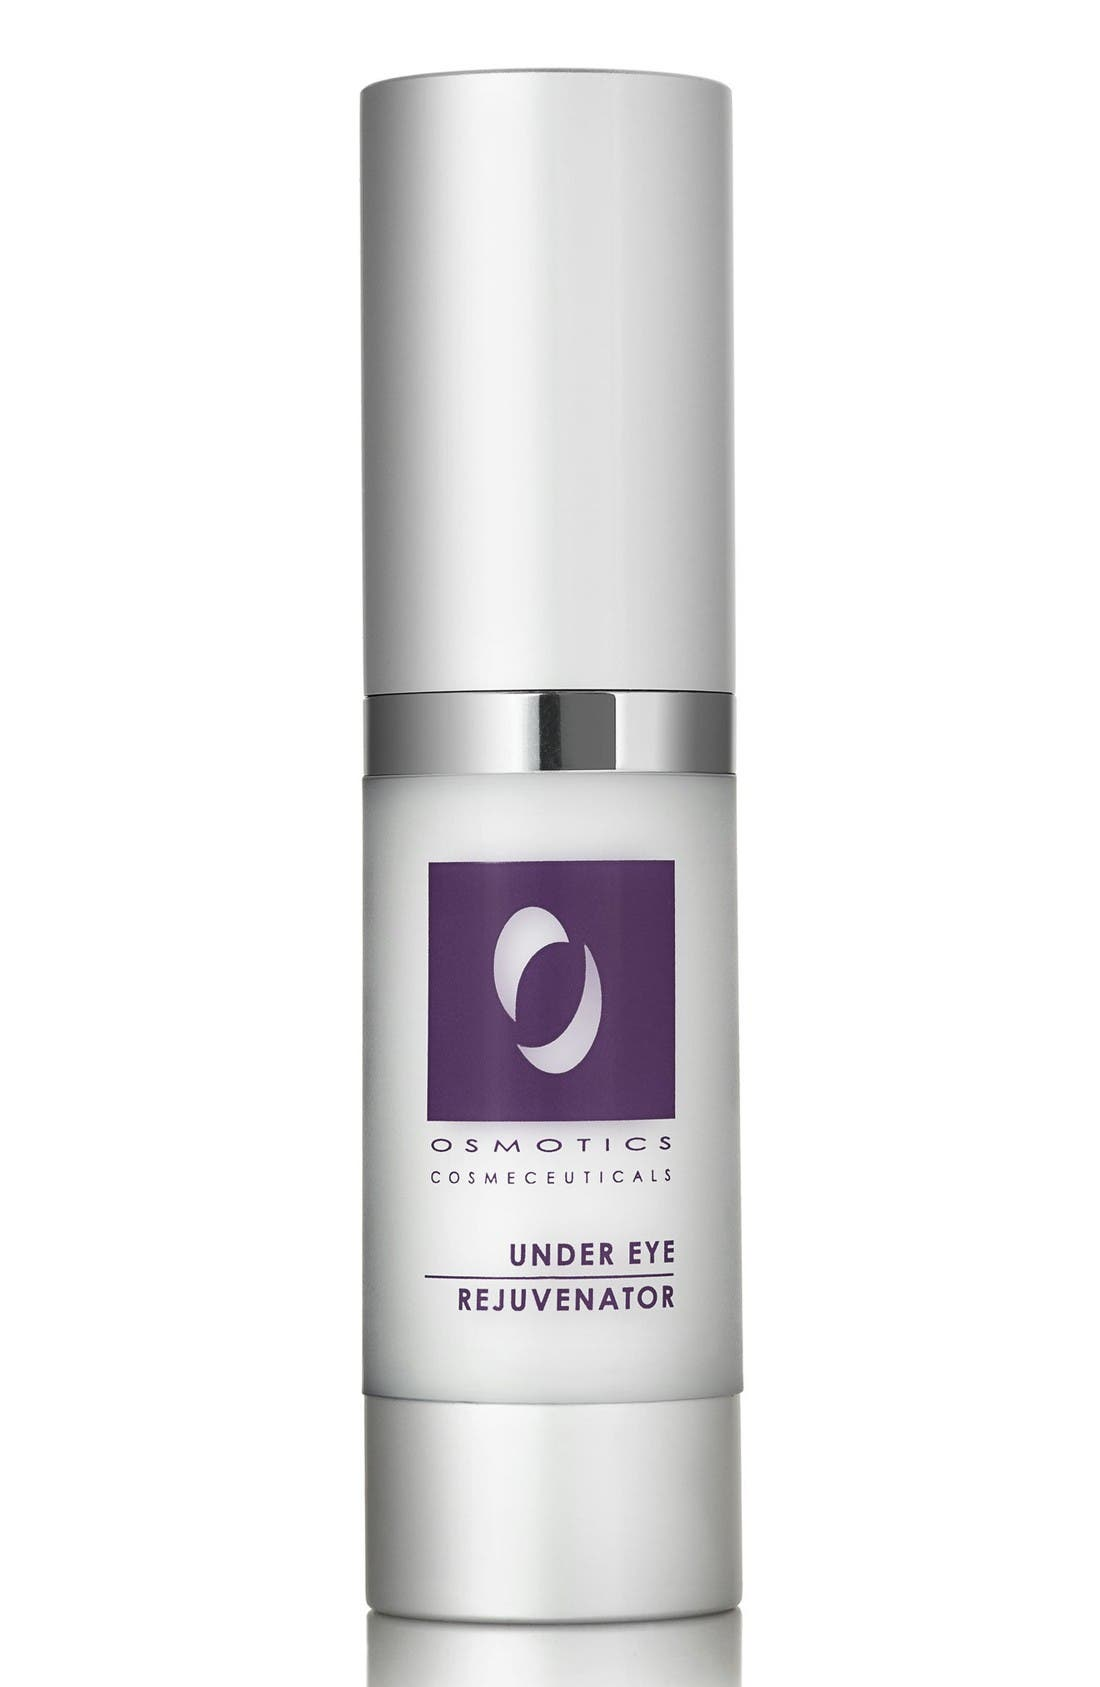 Osmotics Cosmeceuticals Eye Surgery Under Eye Rejuvenator